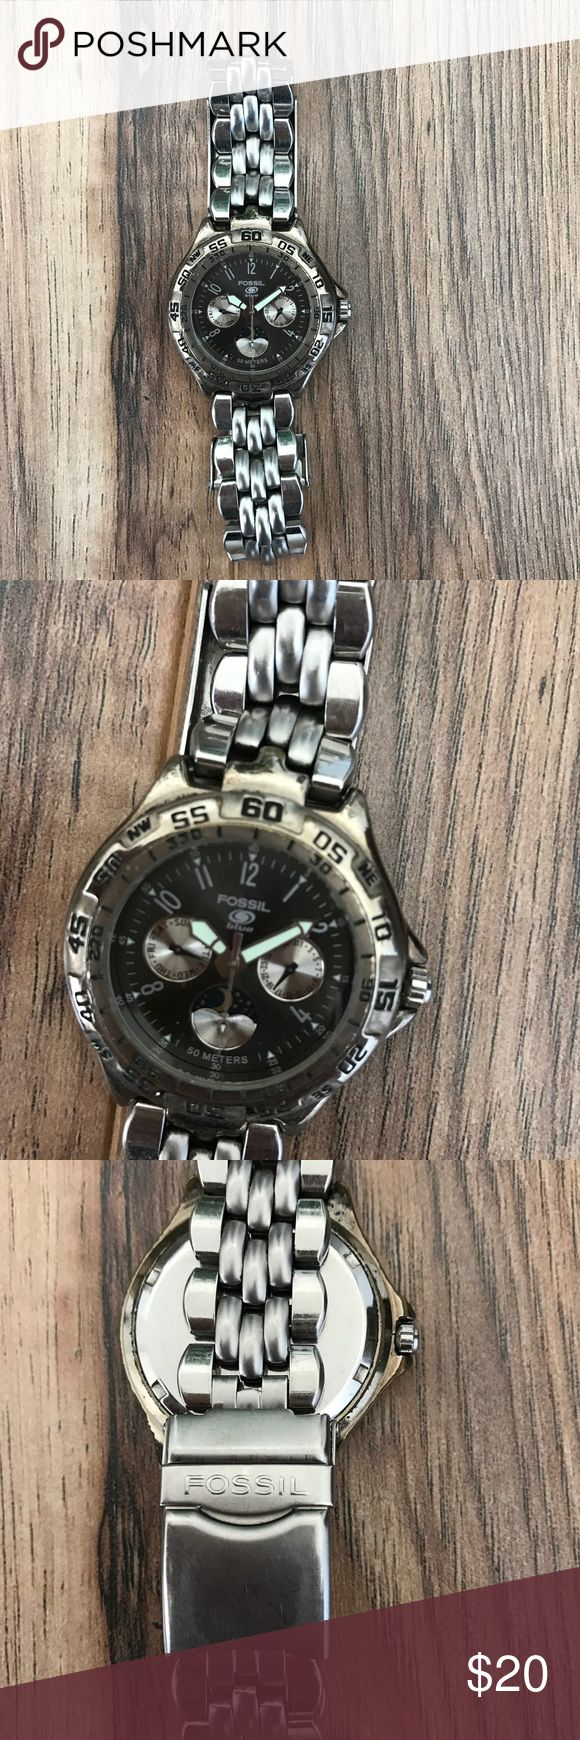 Men's Fossil Watch Men's Fossil watch with silver band and black face. Very good used condition. Needs battery. Fossil Accessories Watches